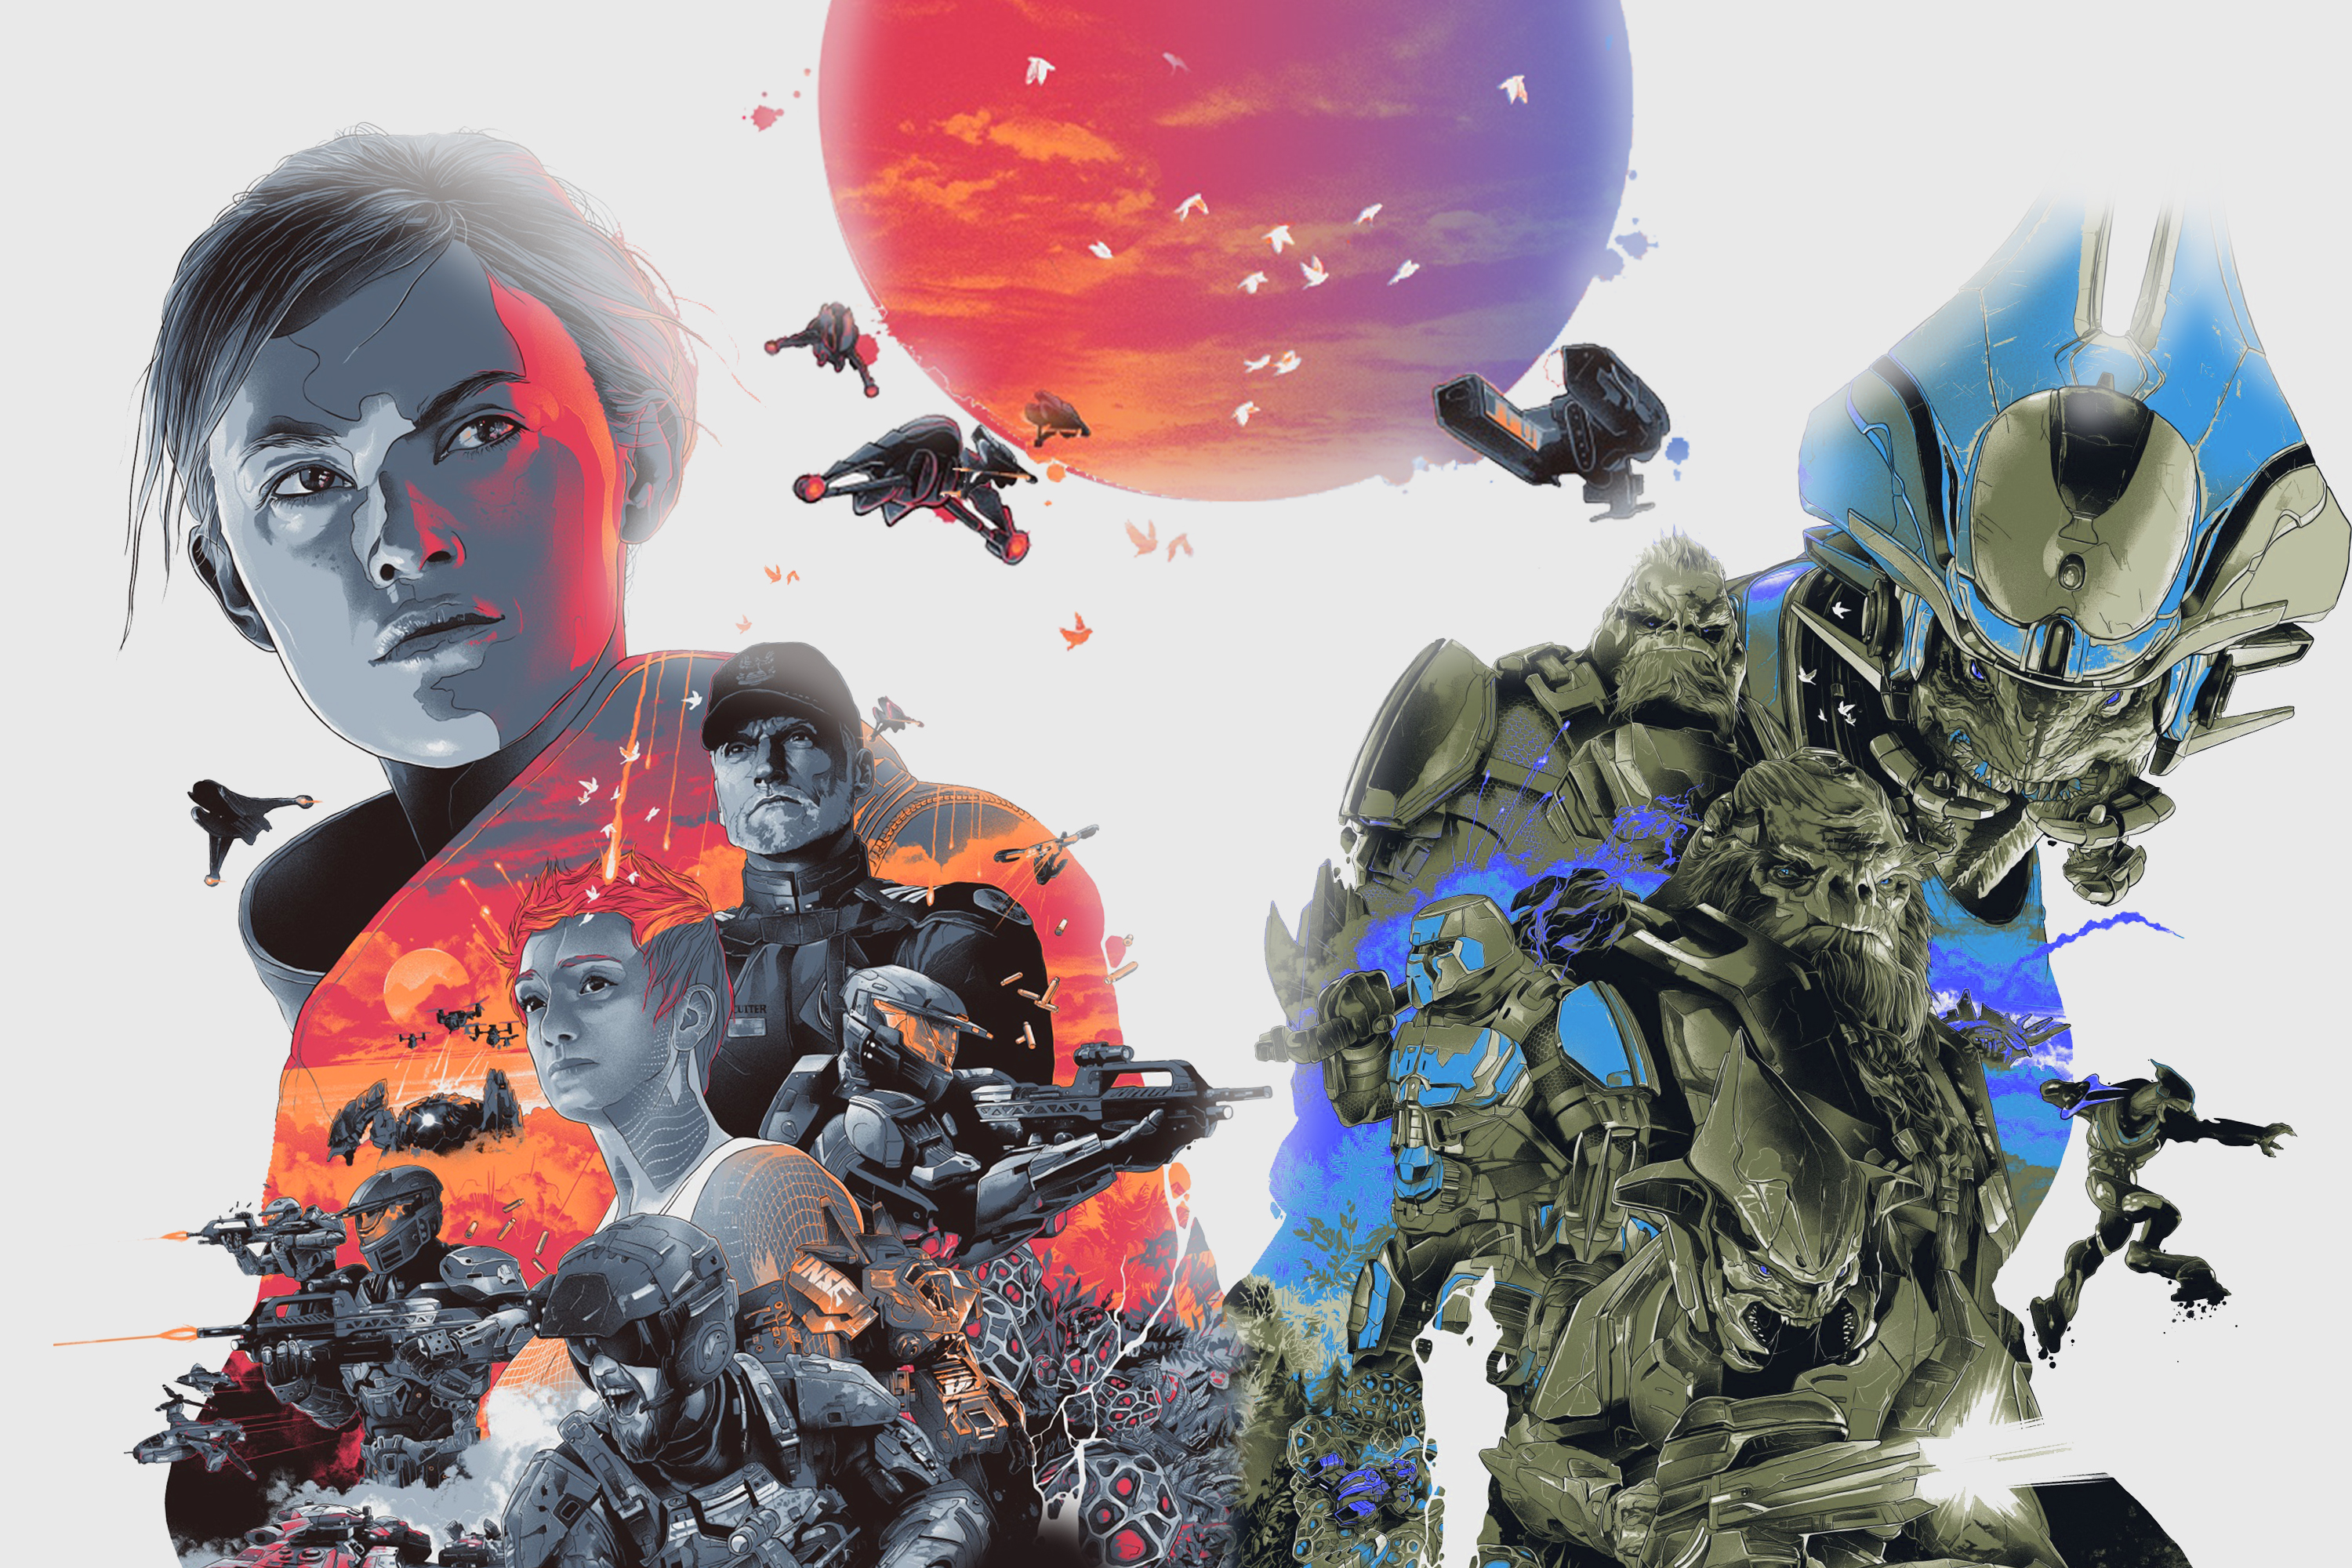 Halo Wars 2 Leaders Wallpaper Image - Alphazulu